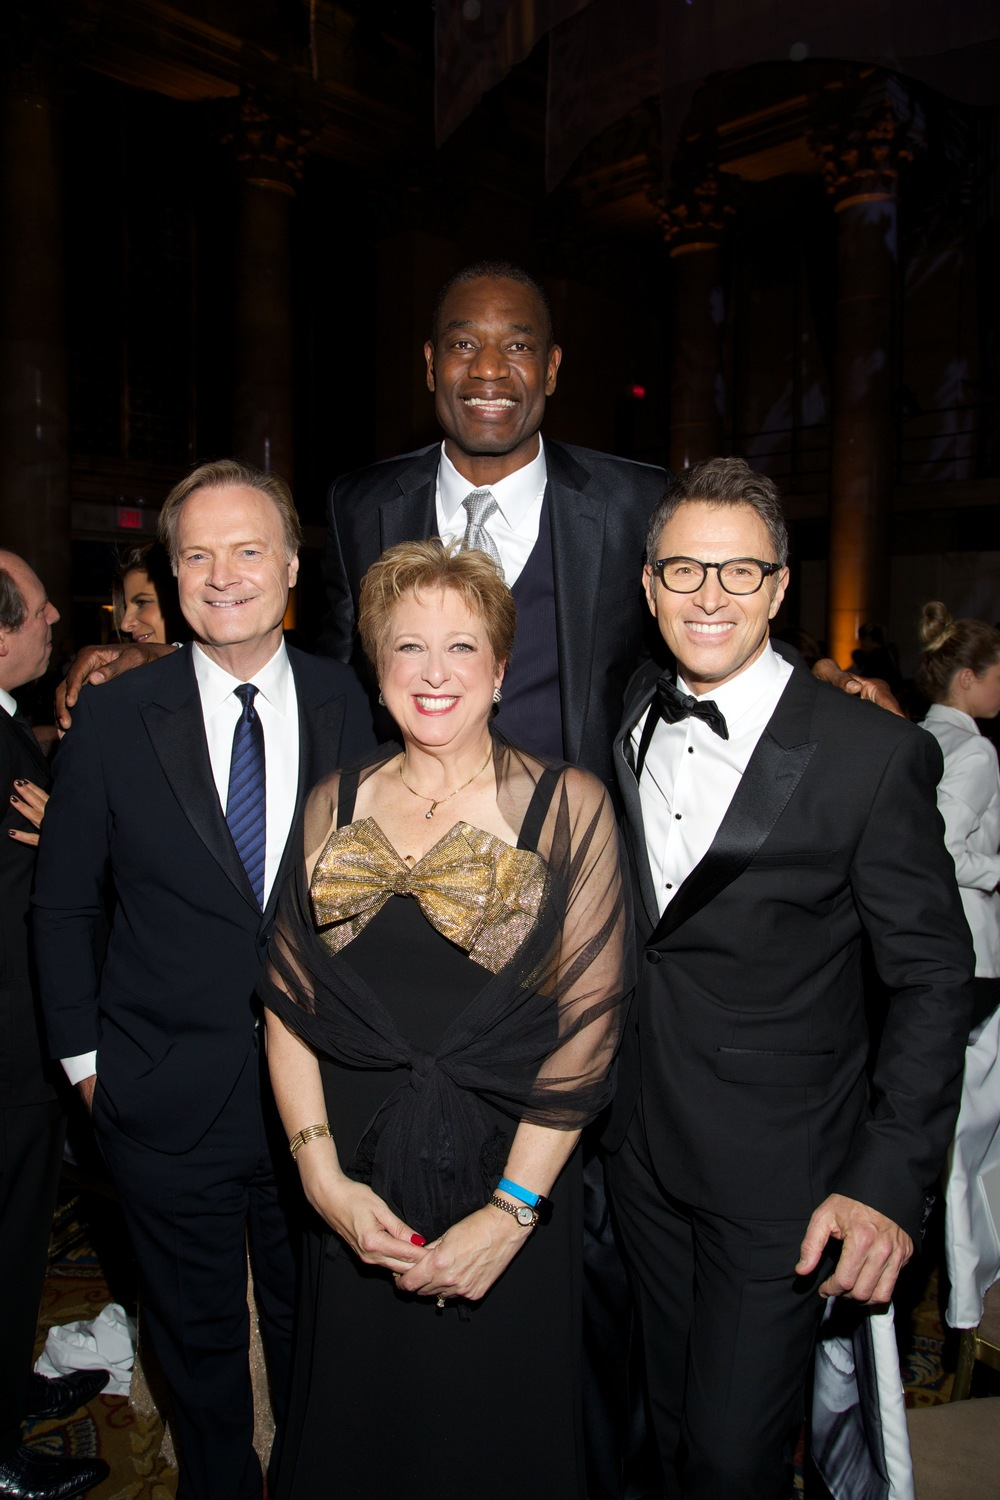 U.S. Fund for UNICEF President & CEO Caryl M. Stern, Lawrence O'Donnell, Dikembe Mutombo and Tim Daly ©2015 Julie Skarratt Photography, Inc./U.S. Fund for UNICEF